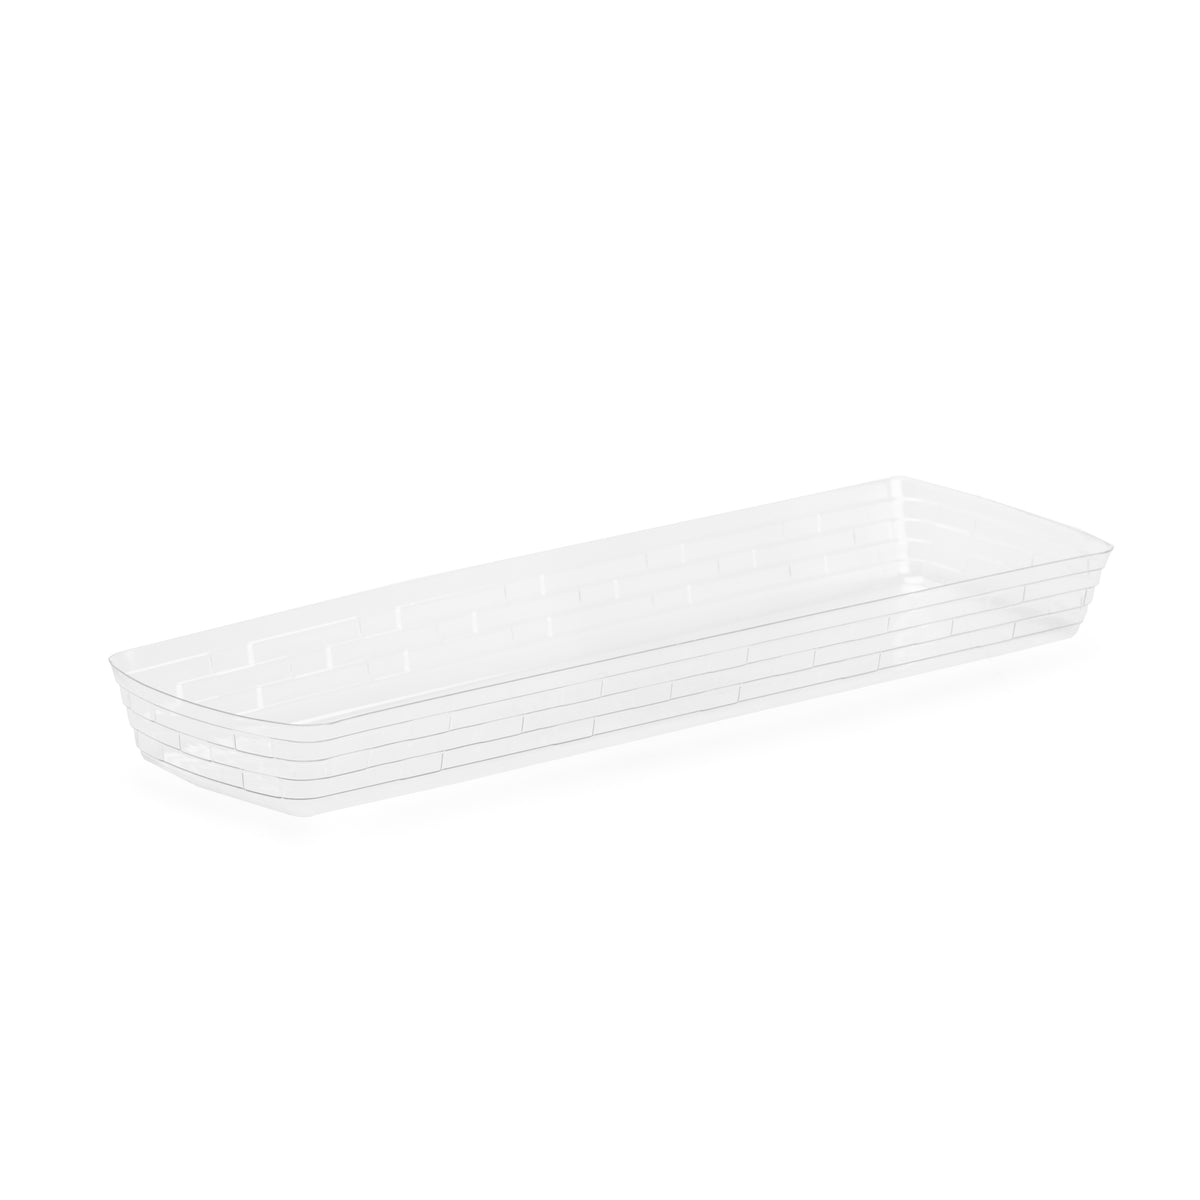 Long Rectangle Serving Basket Protector